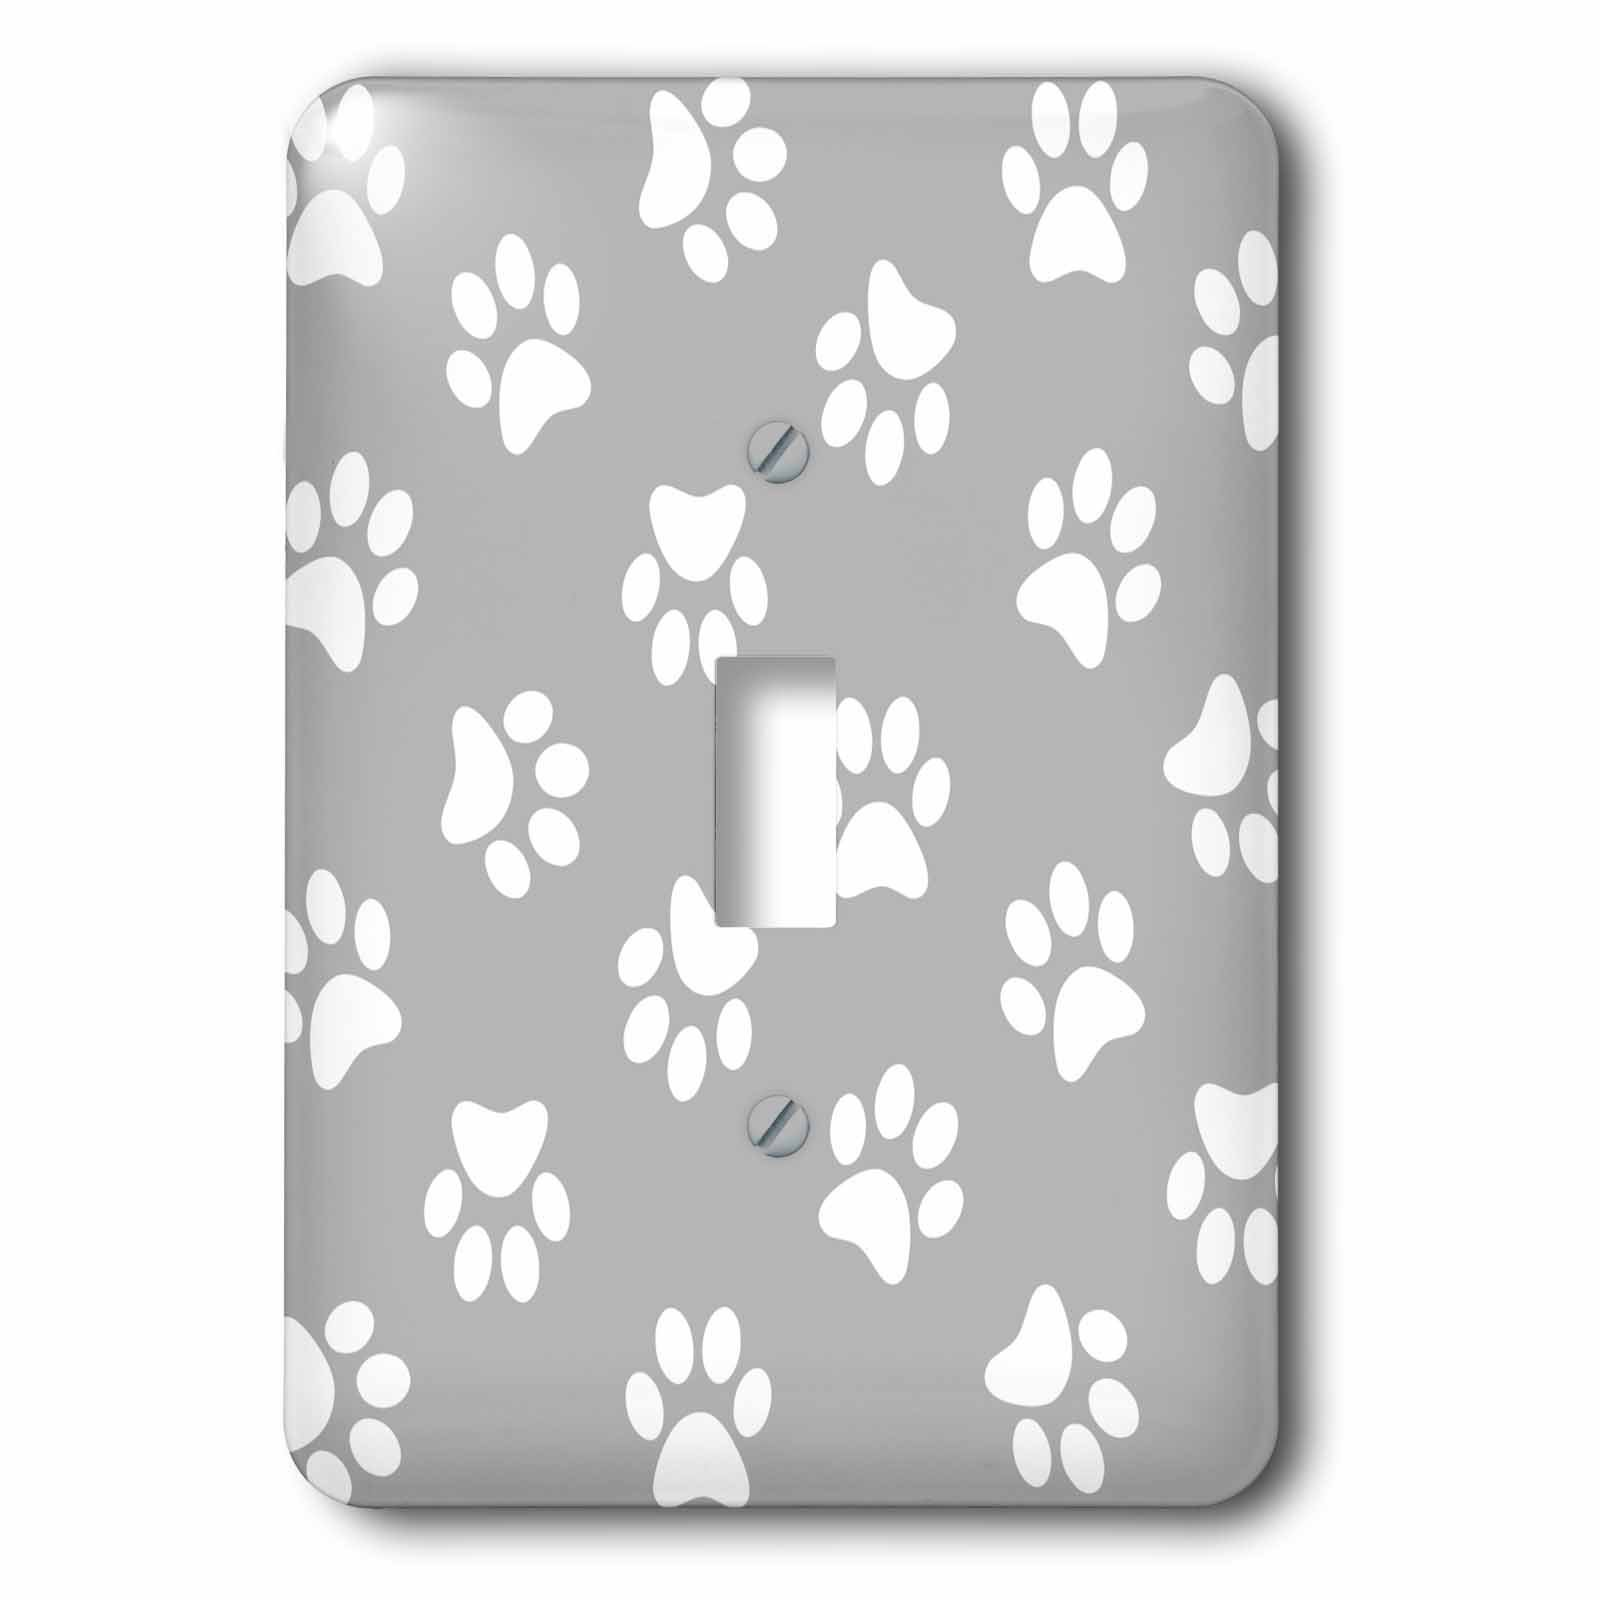 3dRose lsp_161526_1 Gray and White Paw Print Pattern - Grey Pawprints - Cute Cartoon Animal Eg Dog or Cat Footprints Single Toggle Switch